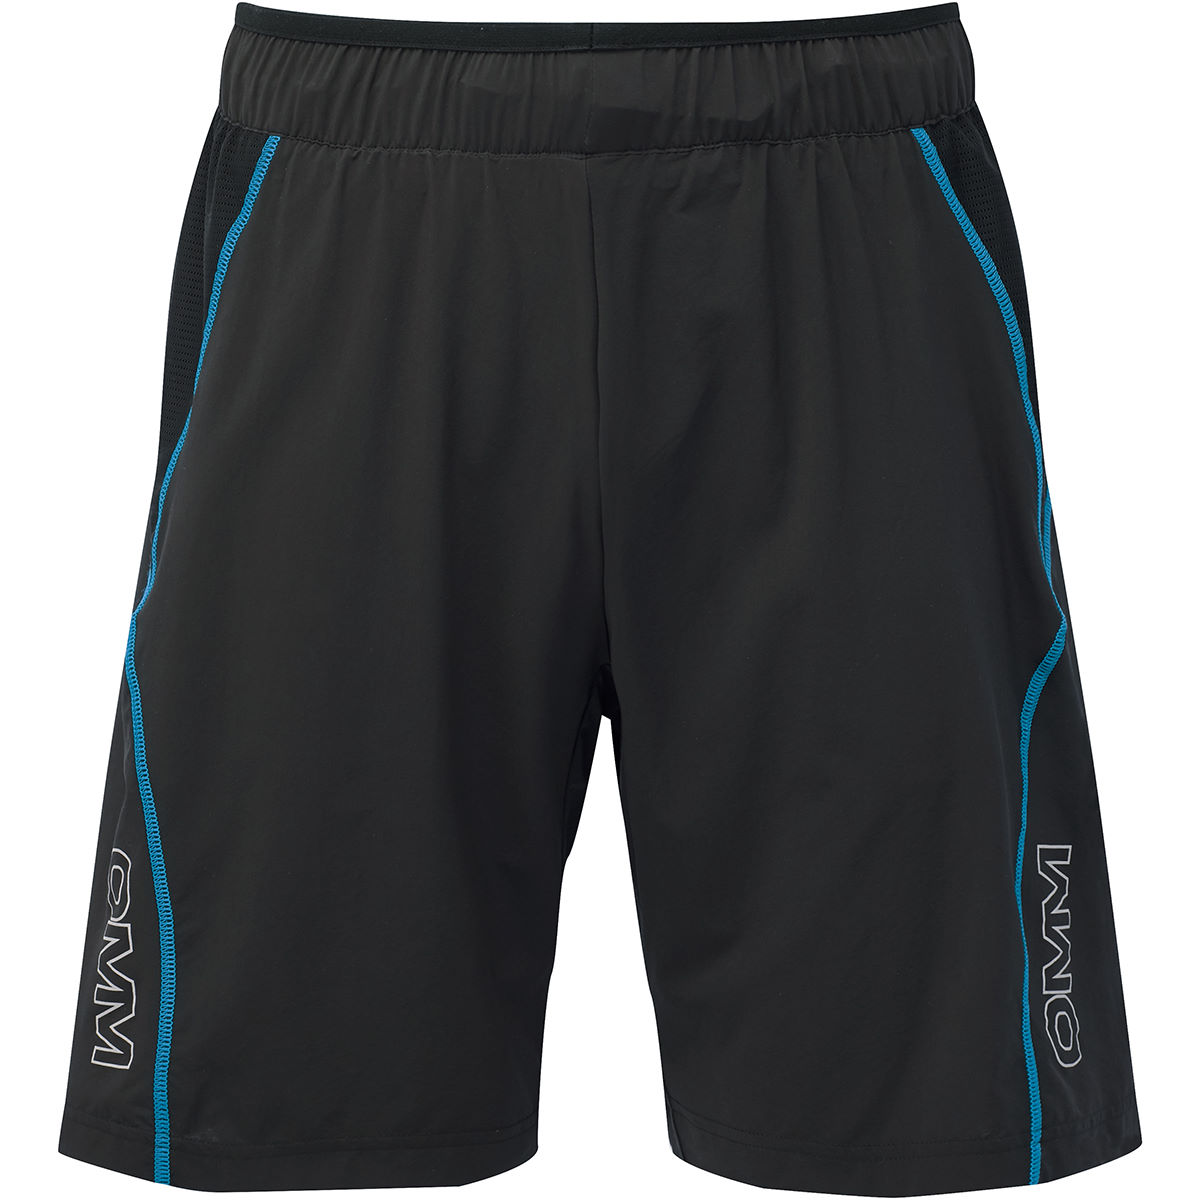 OMM OMM Pace Shorts   Shorts